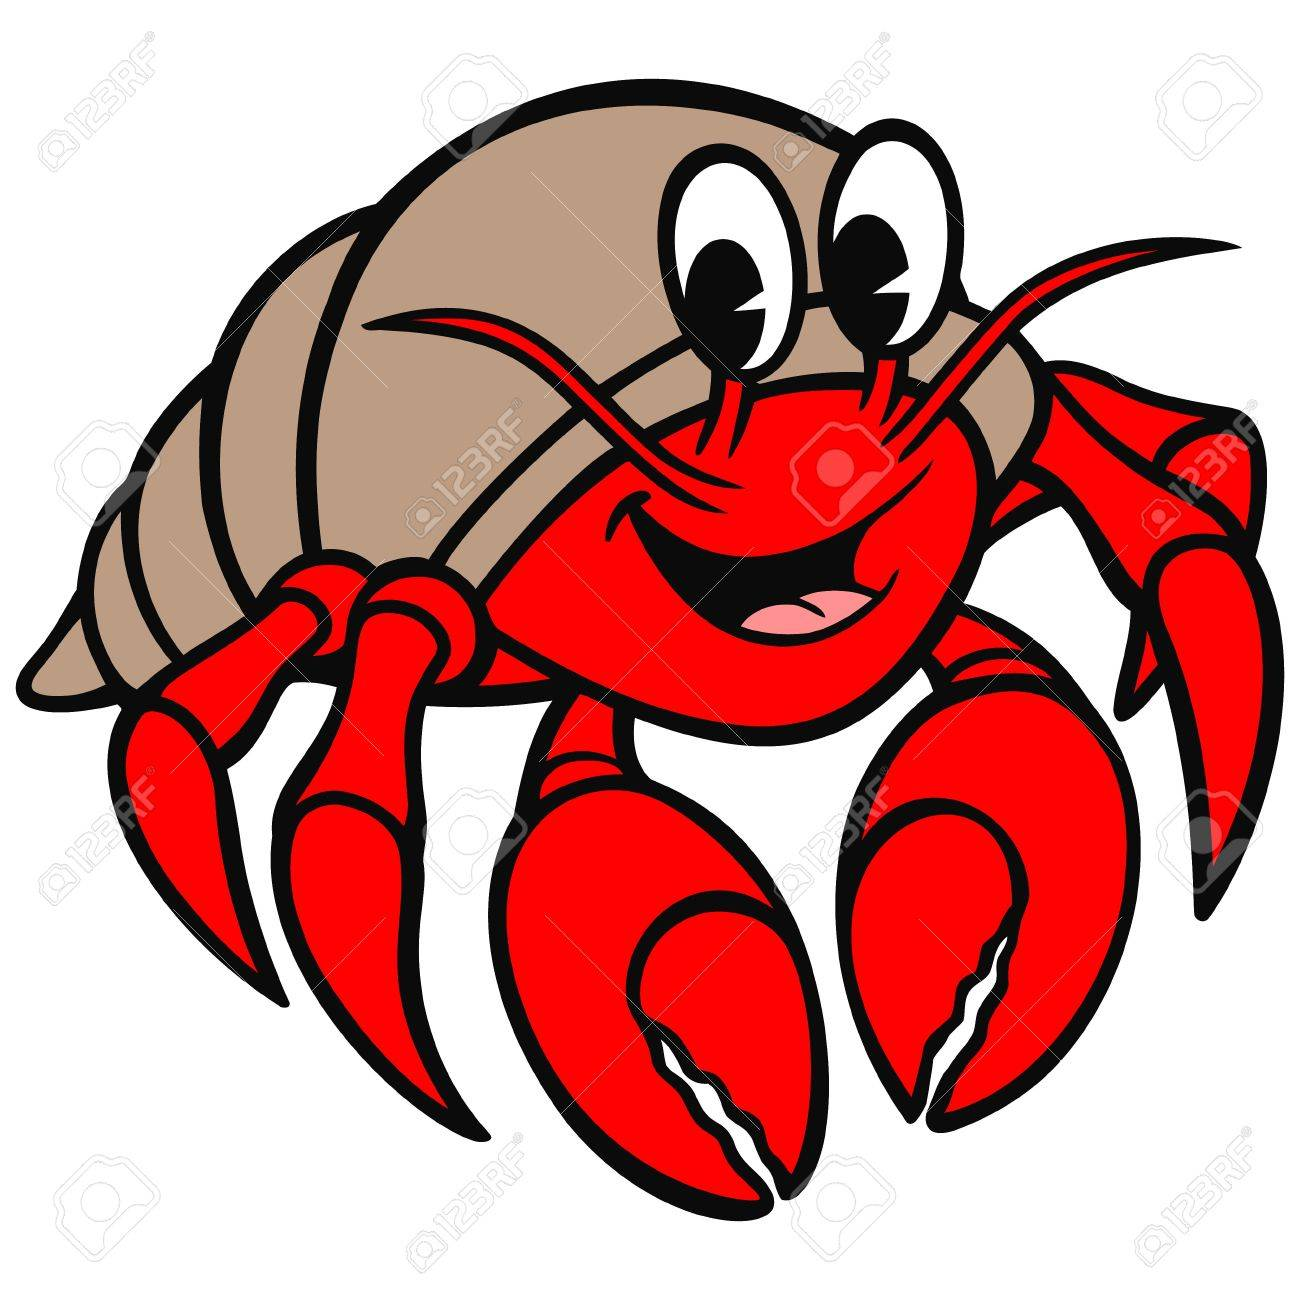 hermit crab royalty free cliparts vectors and stock illustration rh 123rf com hermit crab clipart free hermit crab clip art free